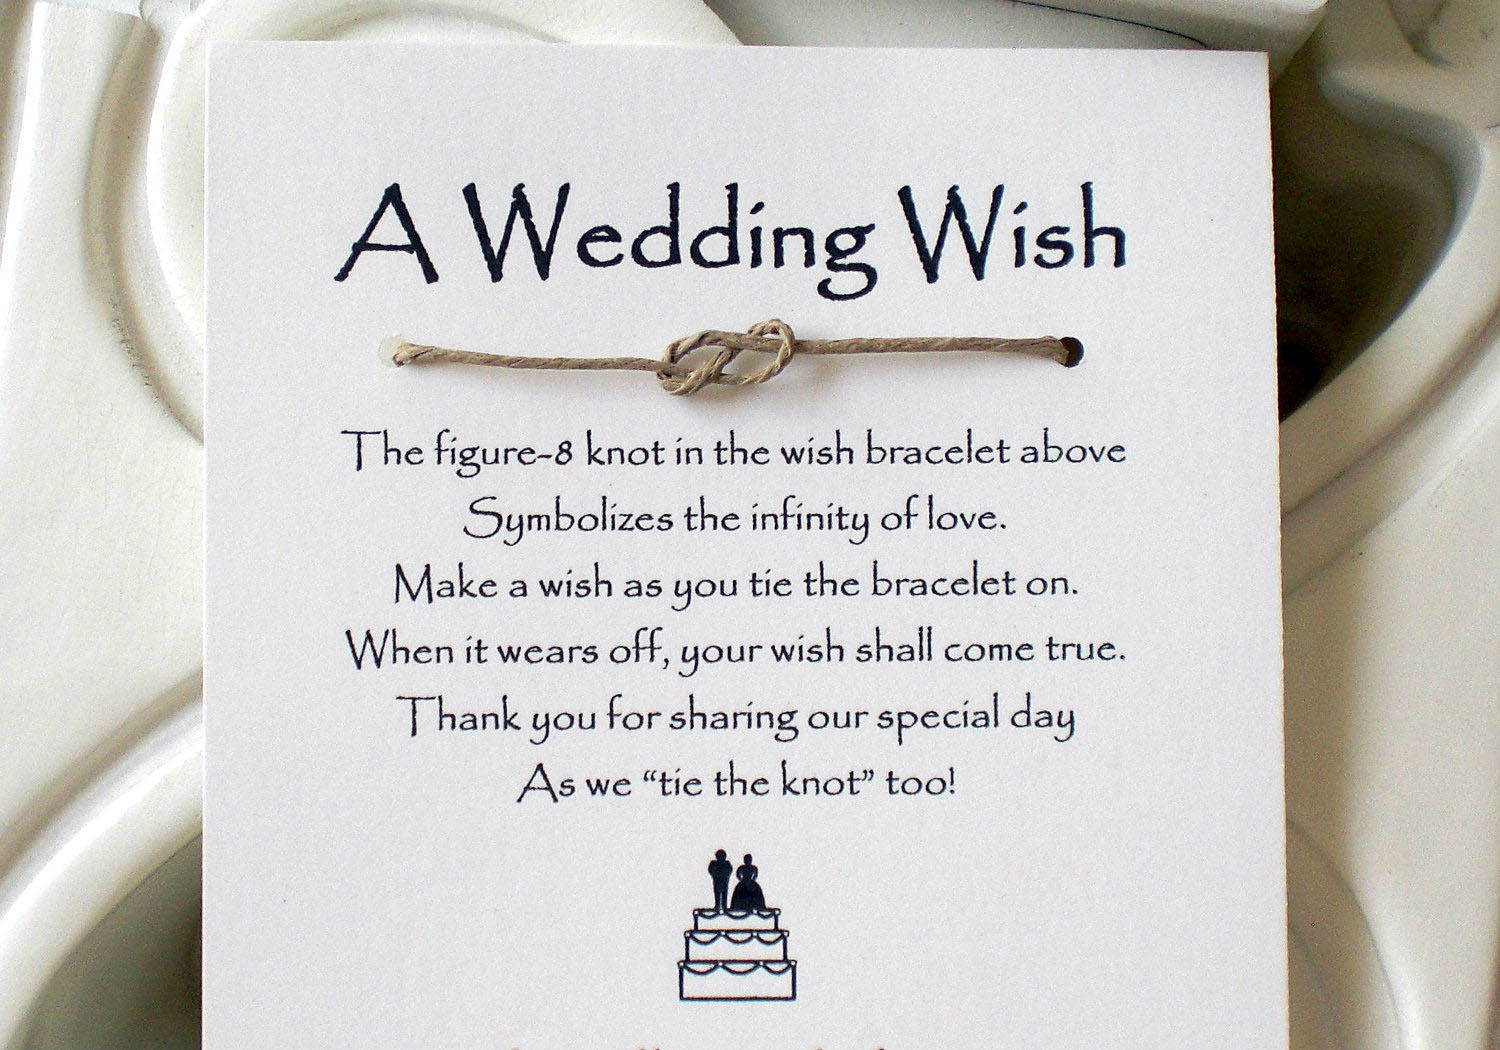 Love Marriage Quotes Adorable Love Marriage Quotes For Wedding Cards  Good Morning Wishesgood